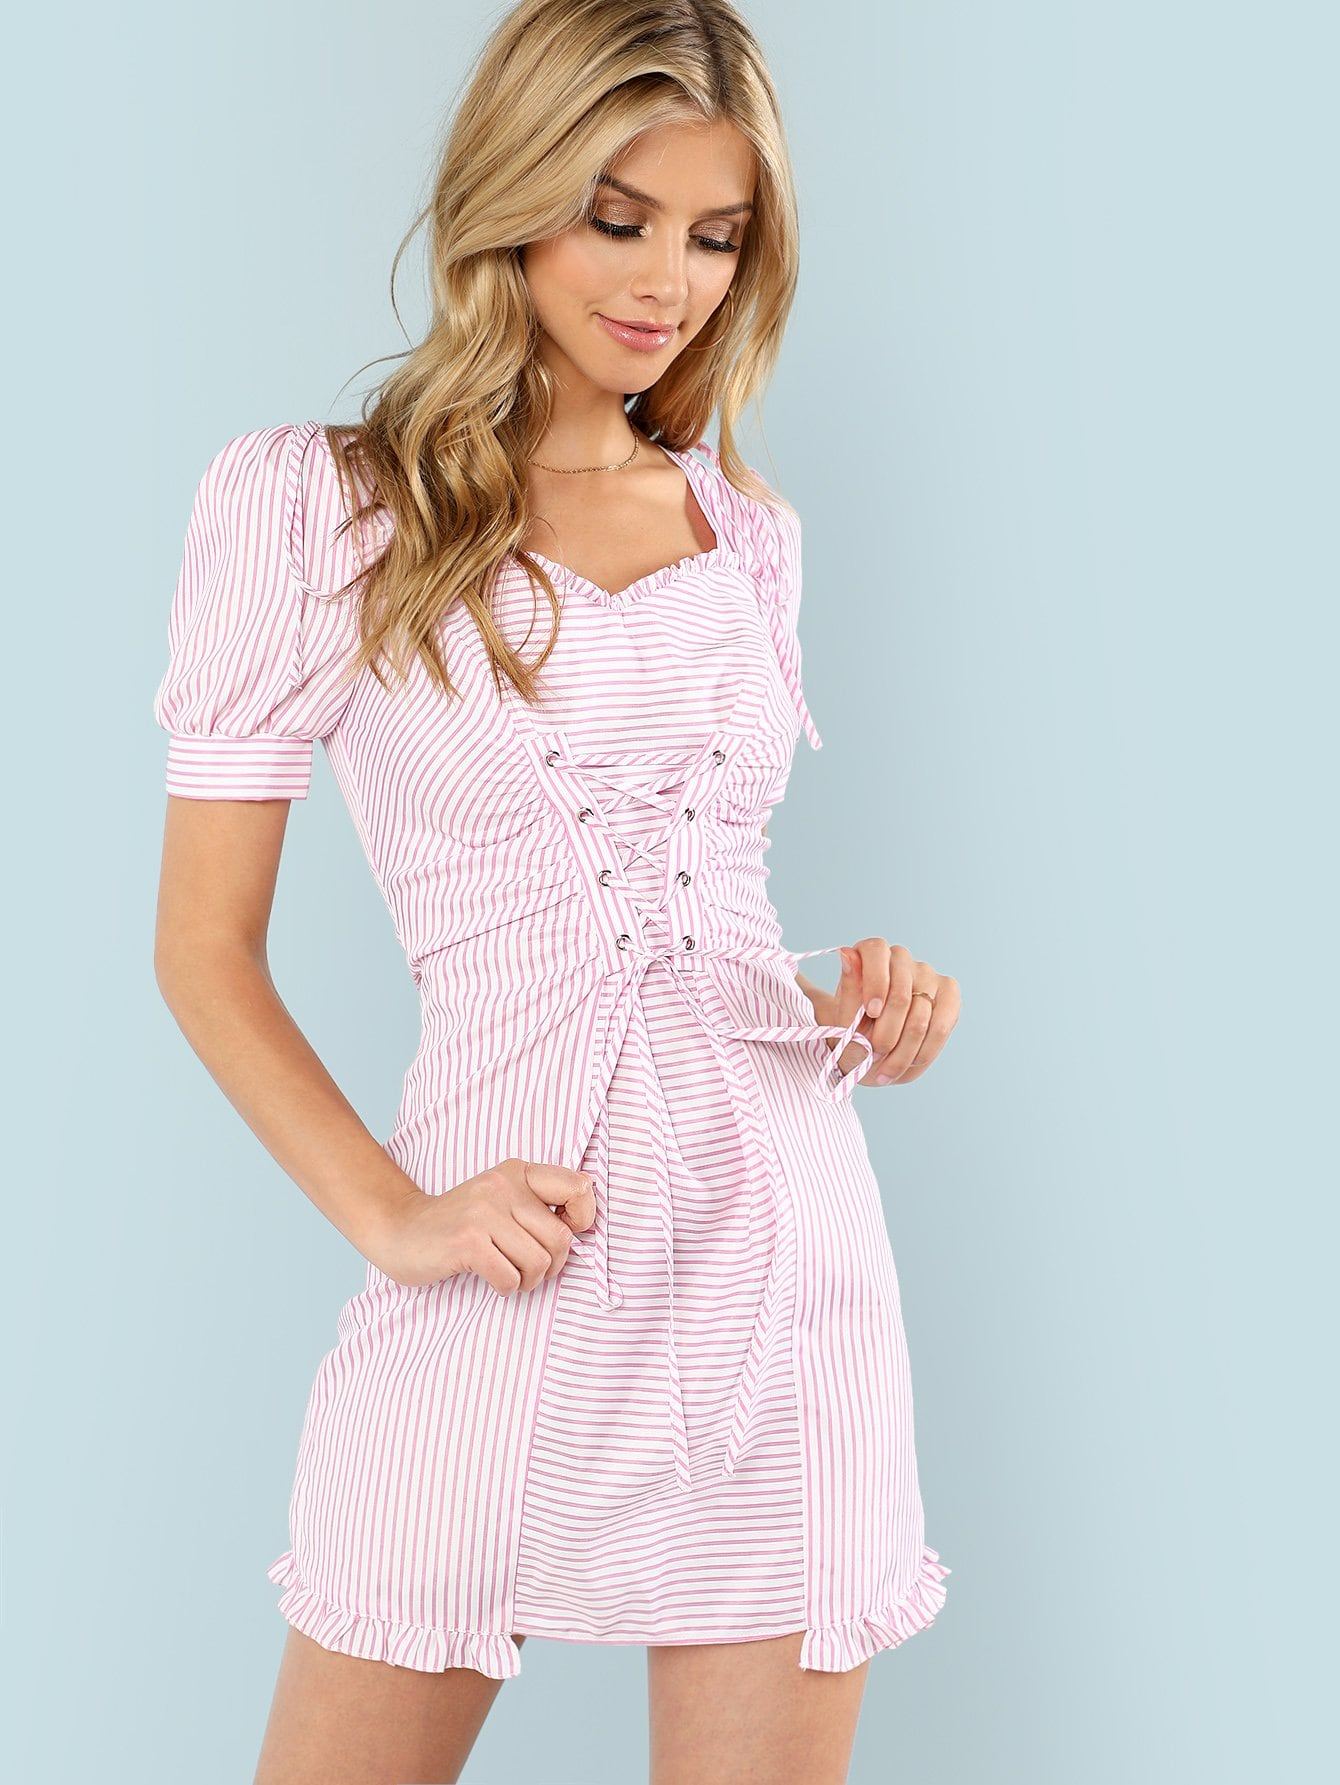 Lace Up Front Frill Trim Zip Back Striped Dress lace up front striped sleeve dress